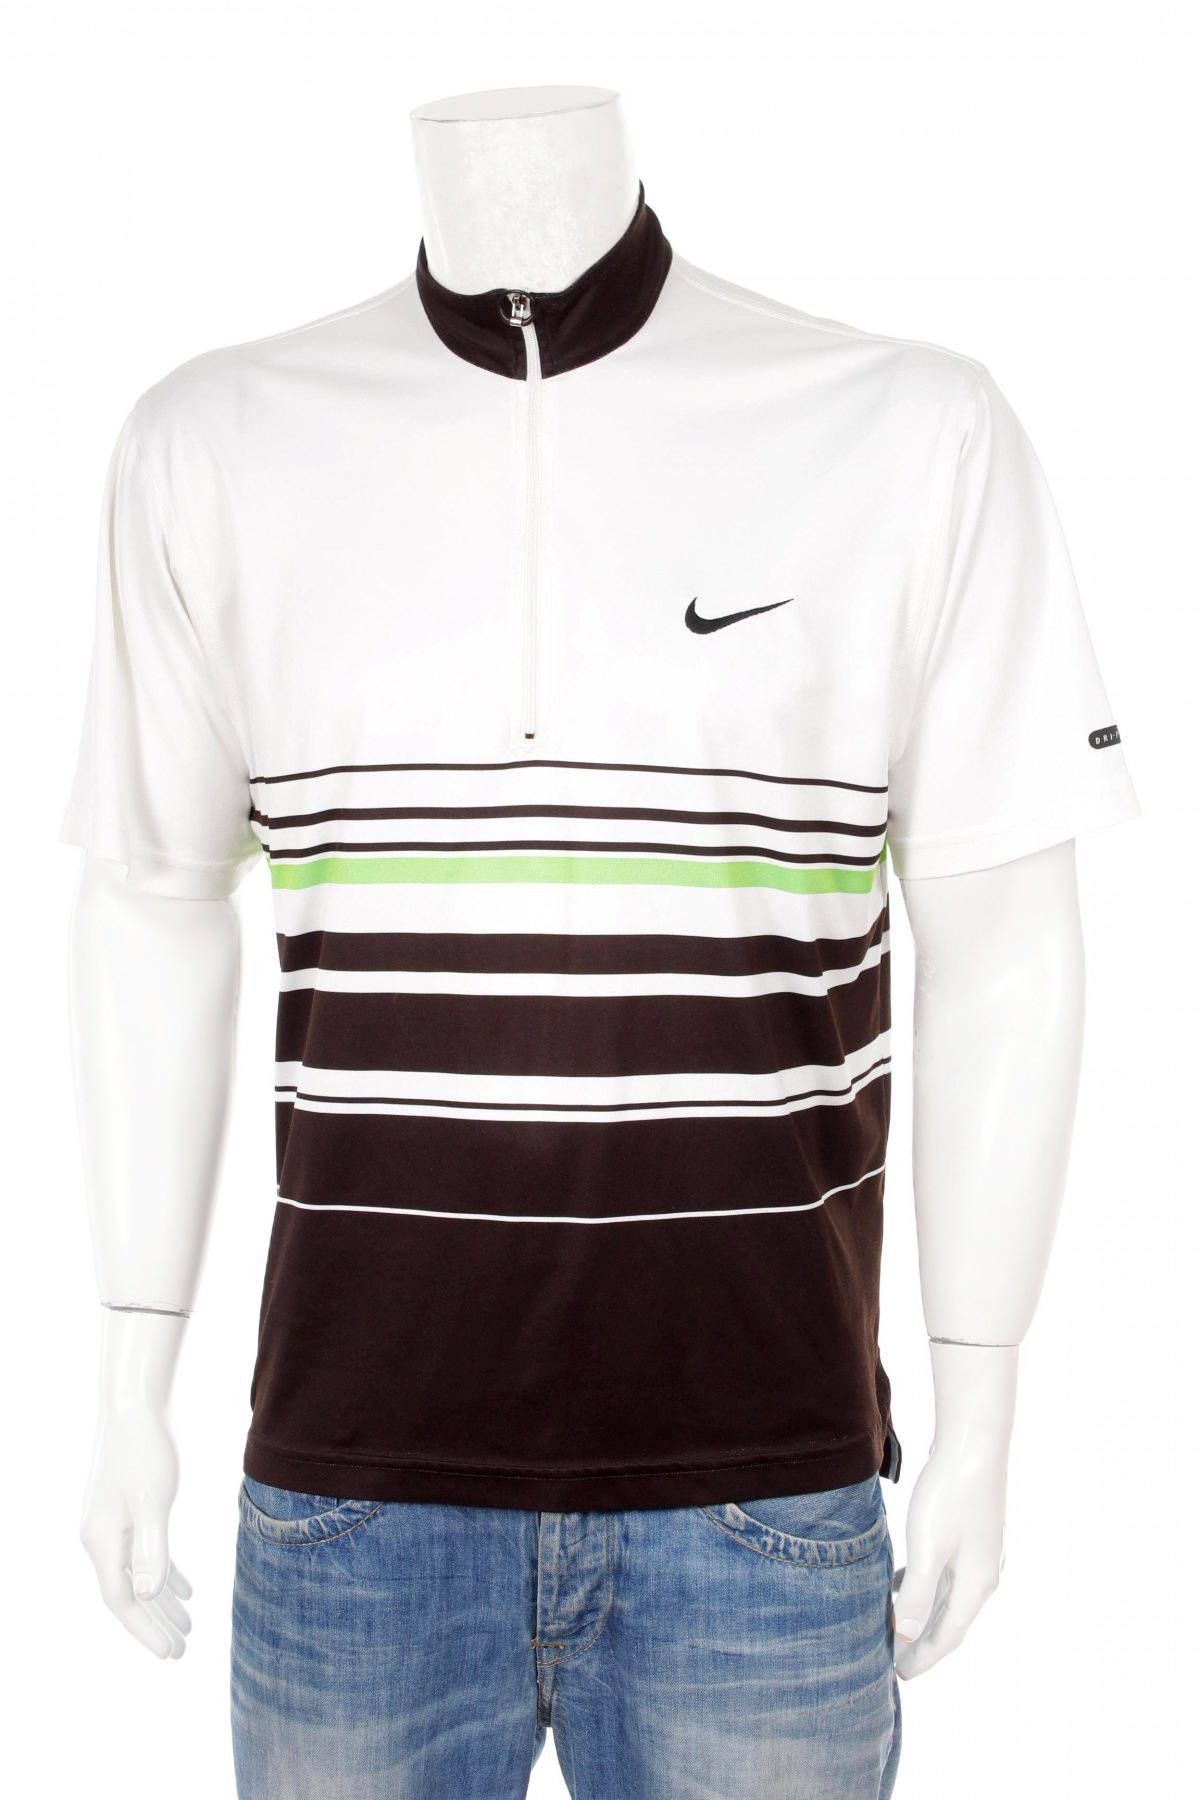 Vintage 90s Nike Andre Agassi series 1/4 zip Shirt tennis Swag Hip Hop  Sport Surfing Shirt Streetwear T-Shirt White/Brown/Green Size M